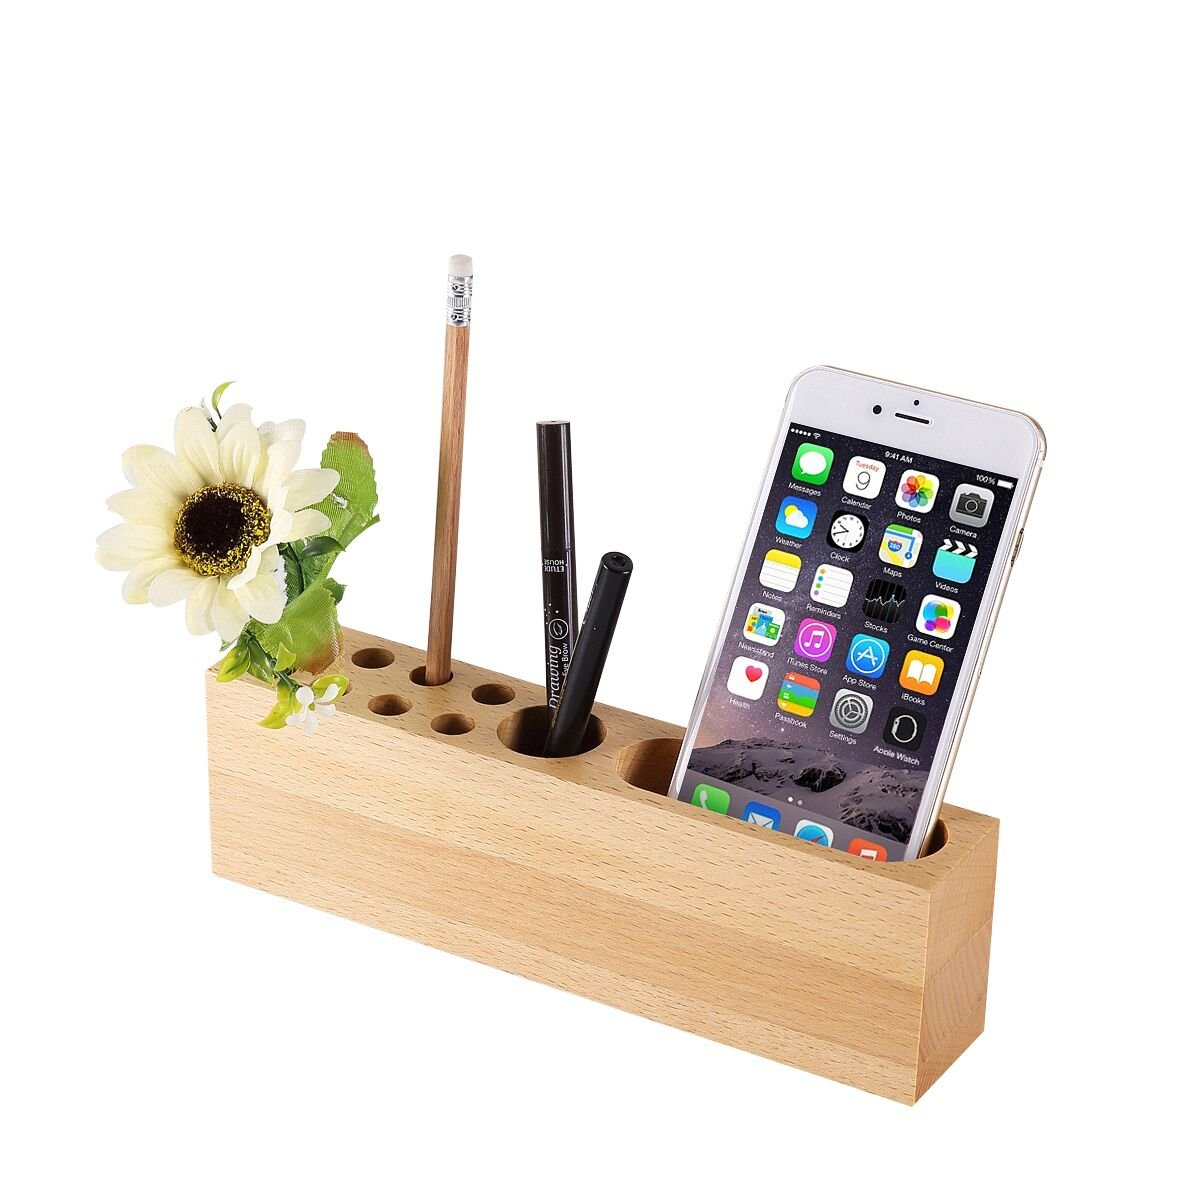 OHHOI Office Supplies Desktop Storage Box Stationery Solid Wood Pen Holders,Mobile Phone Stand Wood Pen Stand | 10 Slots Desk Organizer for Office, Living Room, Bath Room, and Kitchen by OHHOI (Image #1)